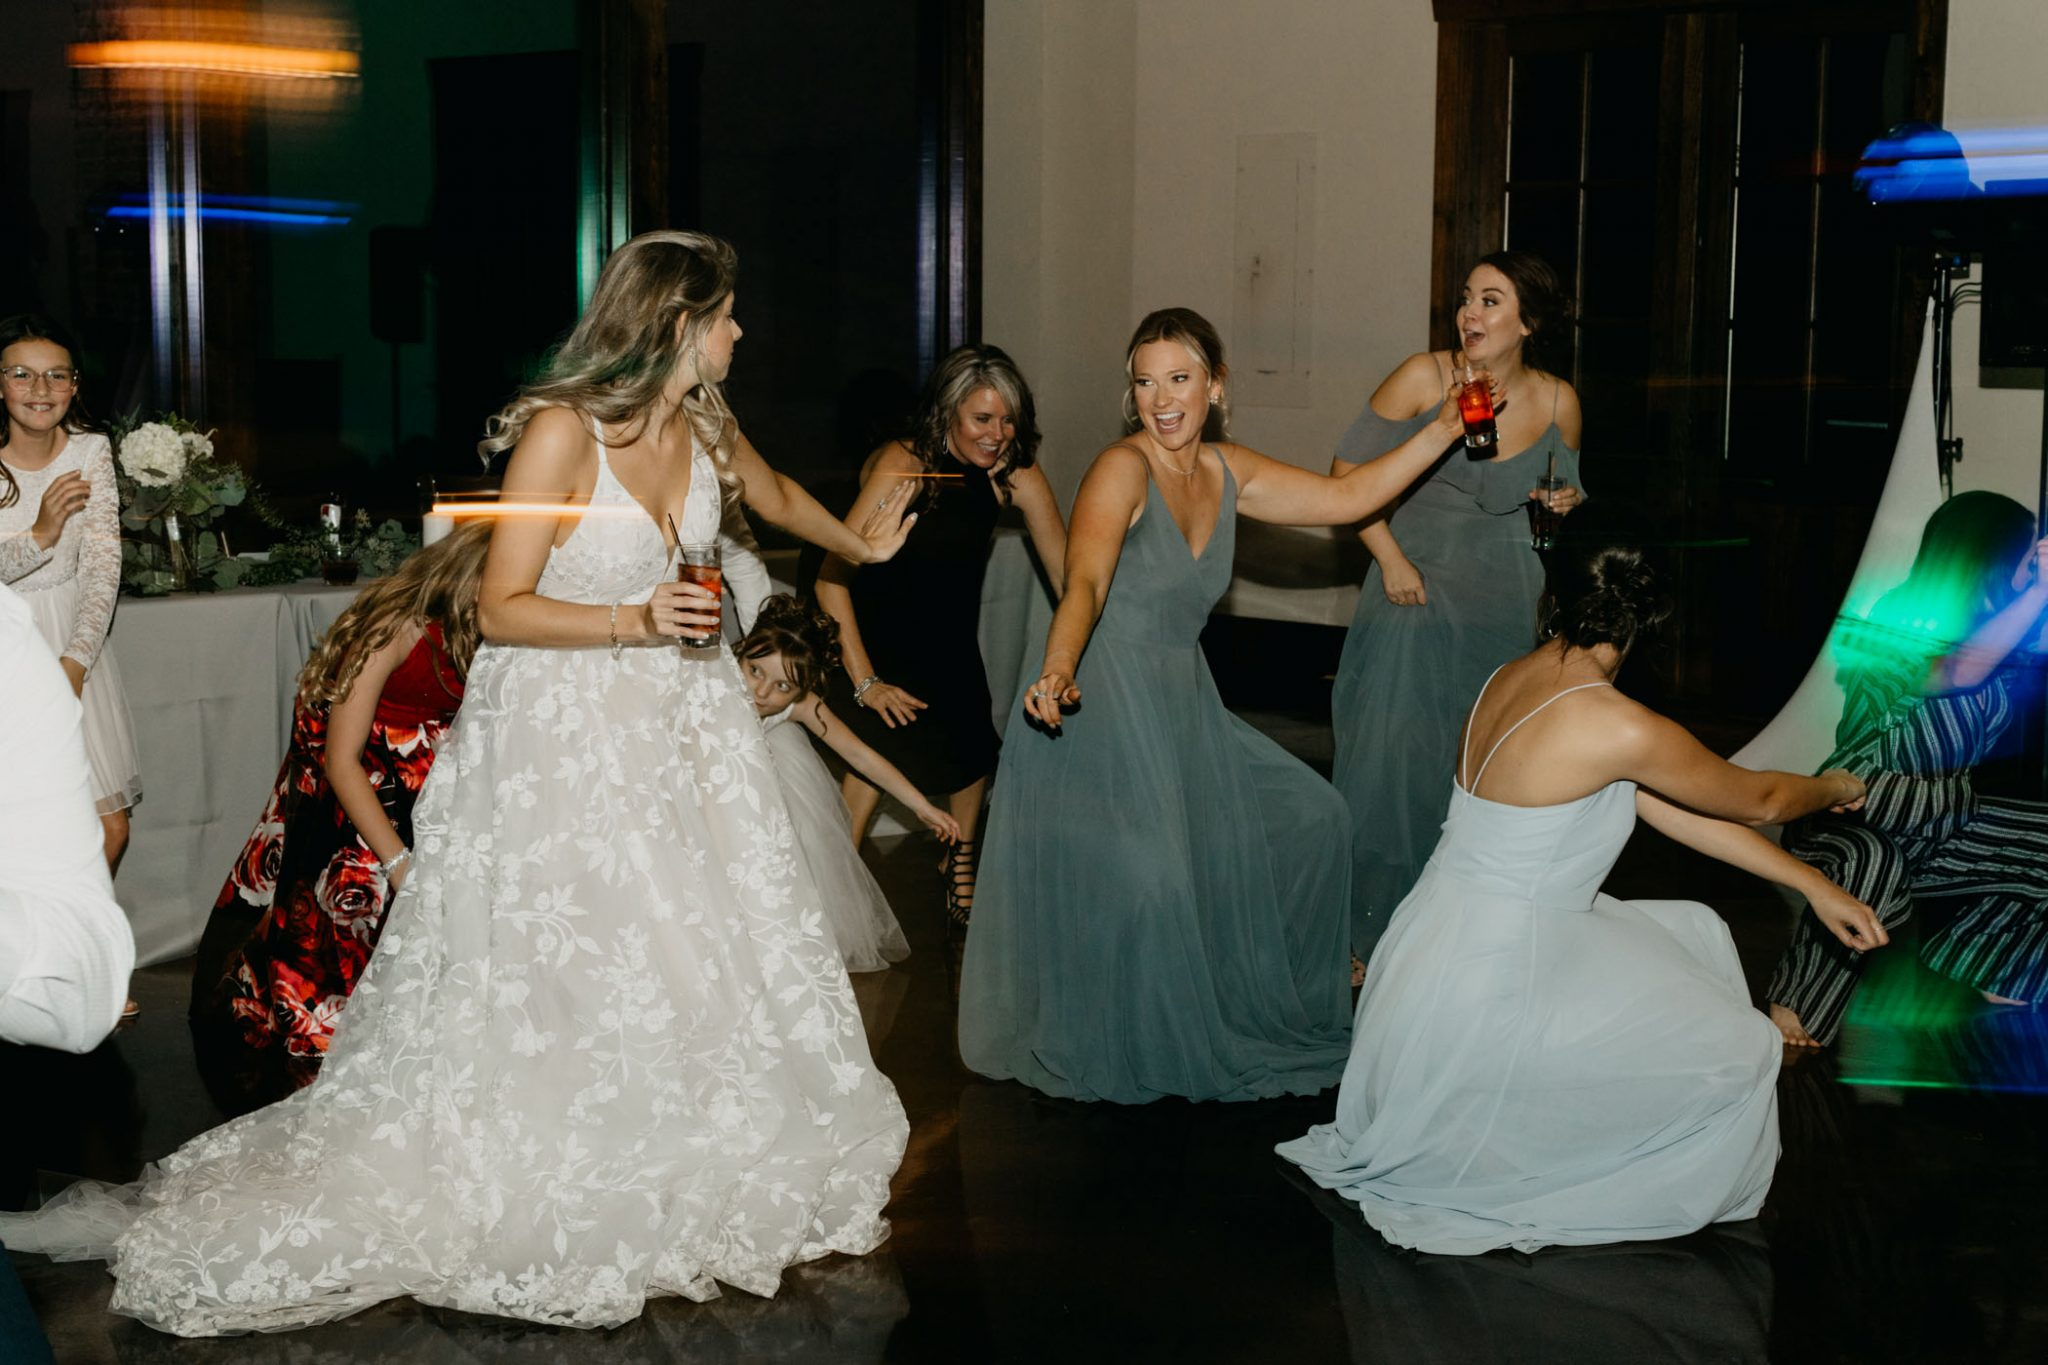 adorable bridal party dancing and having fun at a wedding reception